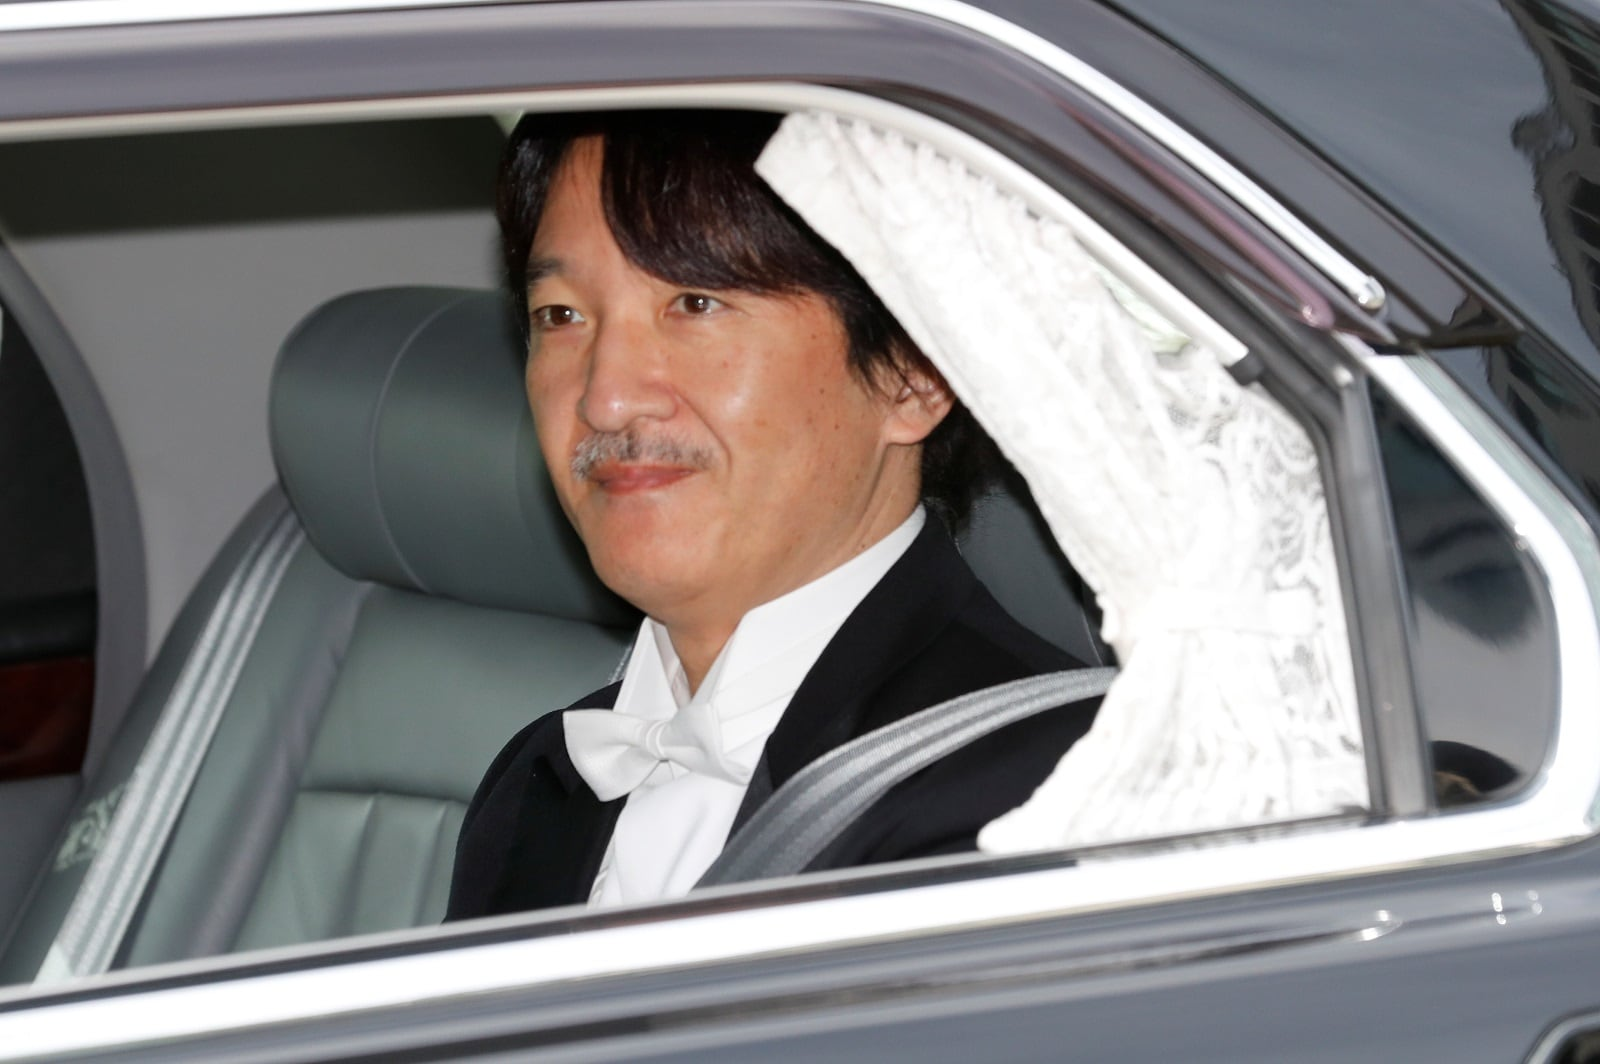 Japan's new Crown Prince Akishino looks from his vehicle upon arriving at the Imperial Palace in Tokyo, Japan May 1, 2019. REUTERS/Kim Kyung-Hoon